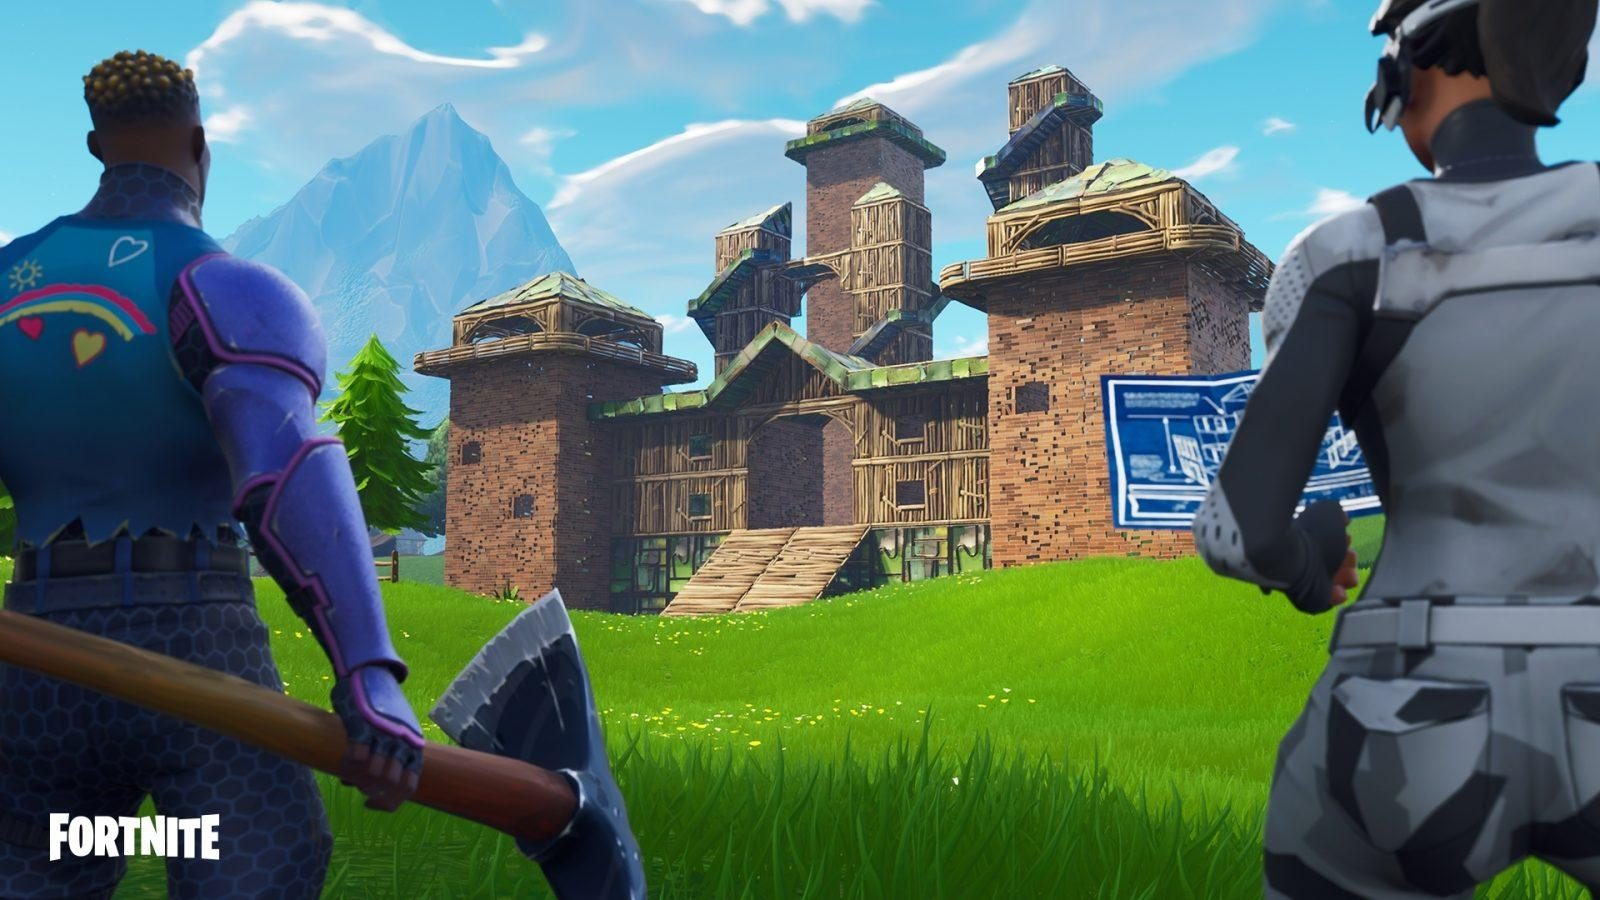 Two fortnite characters looking at building